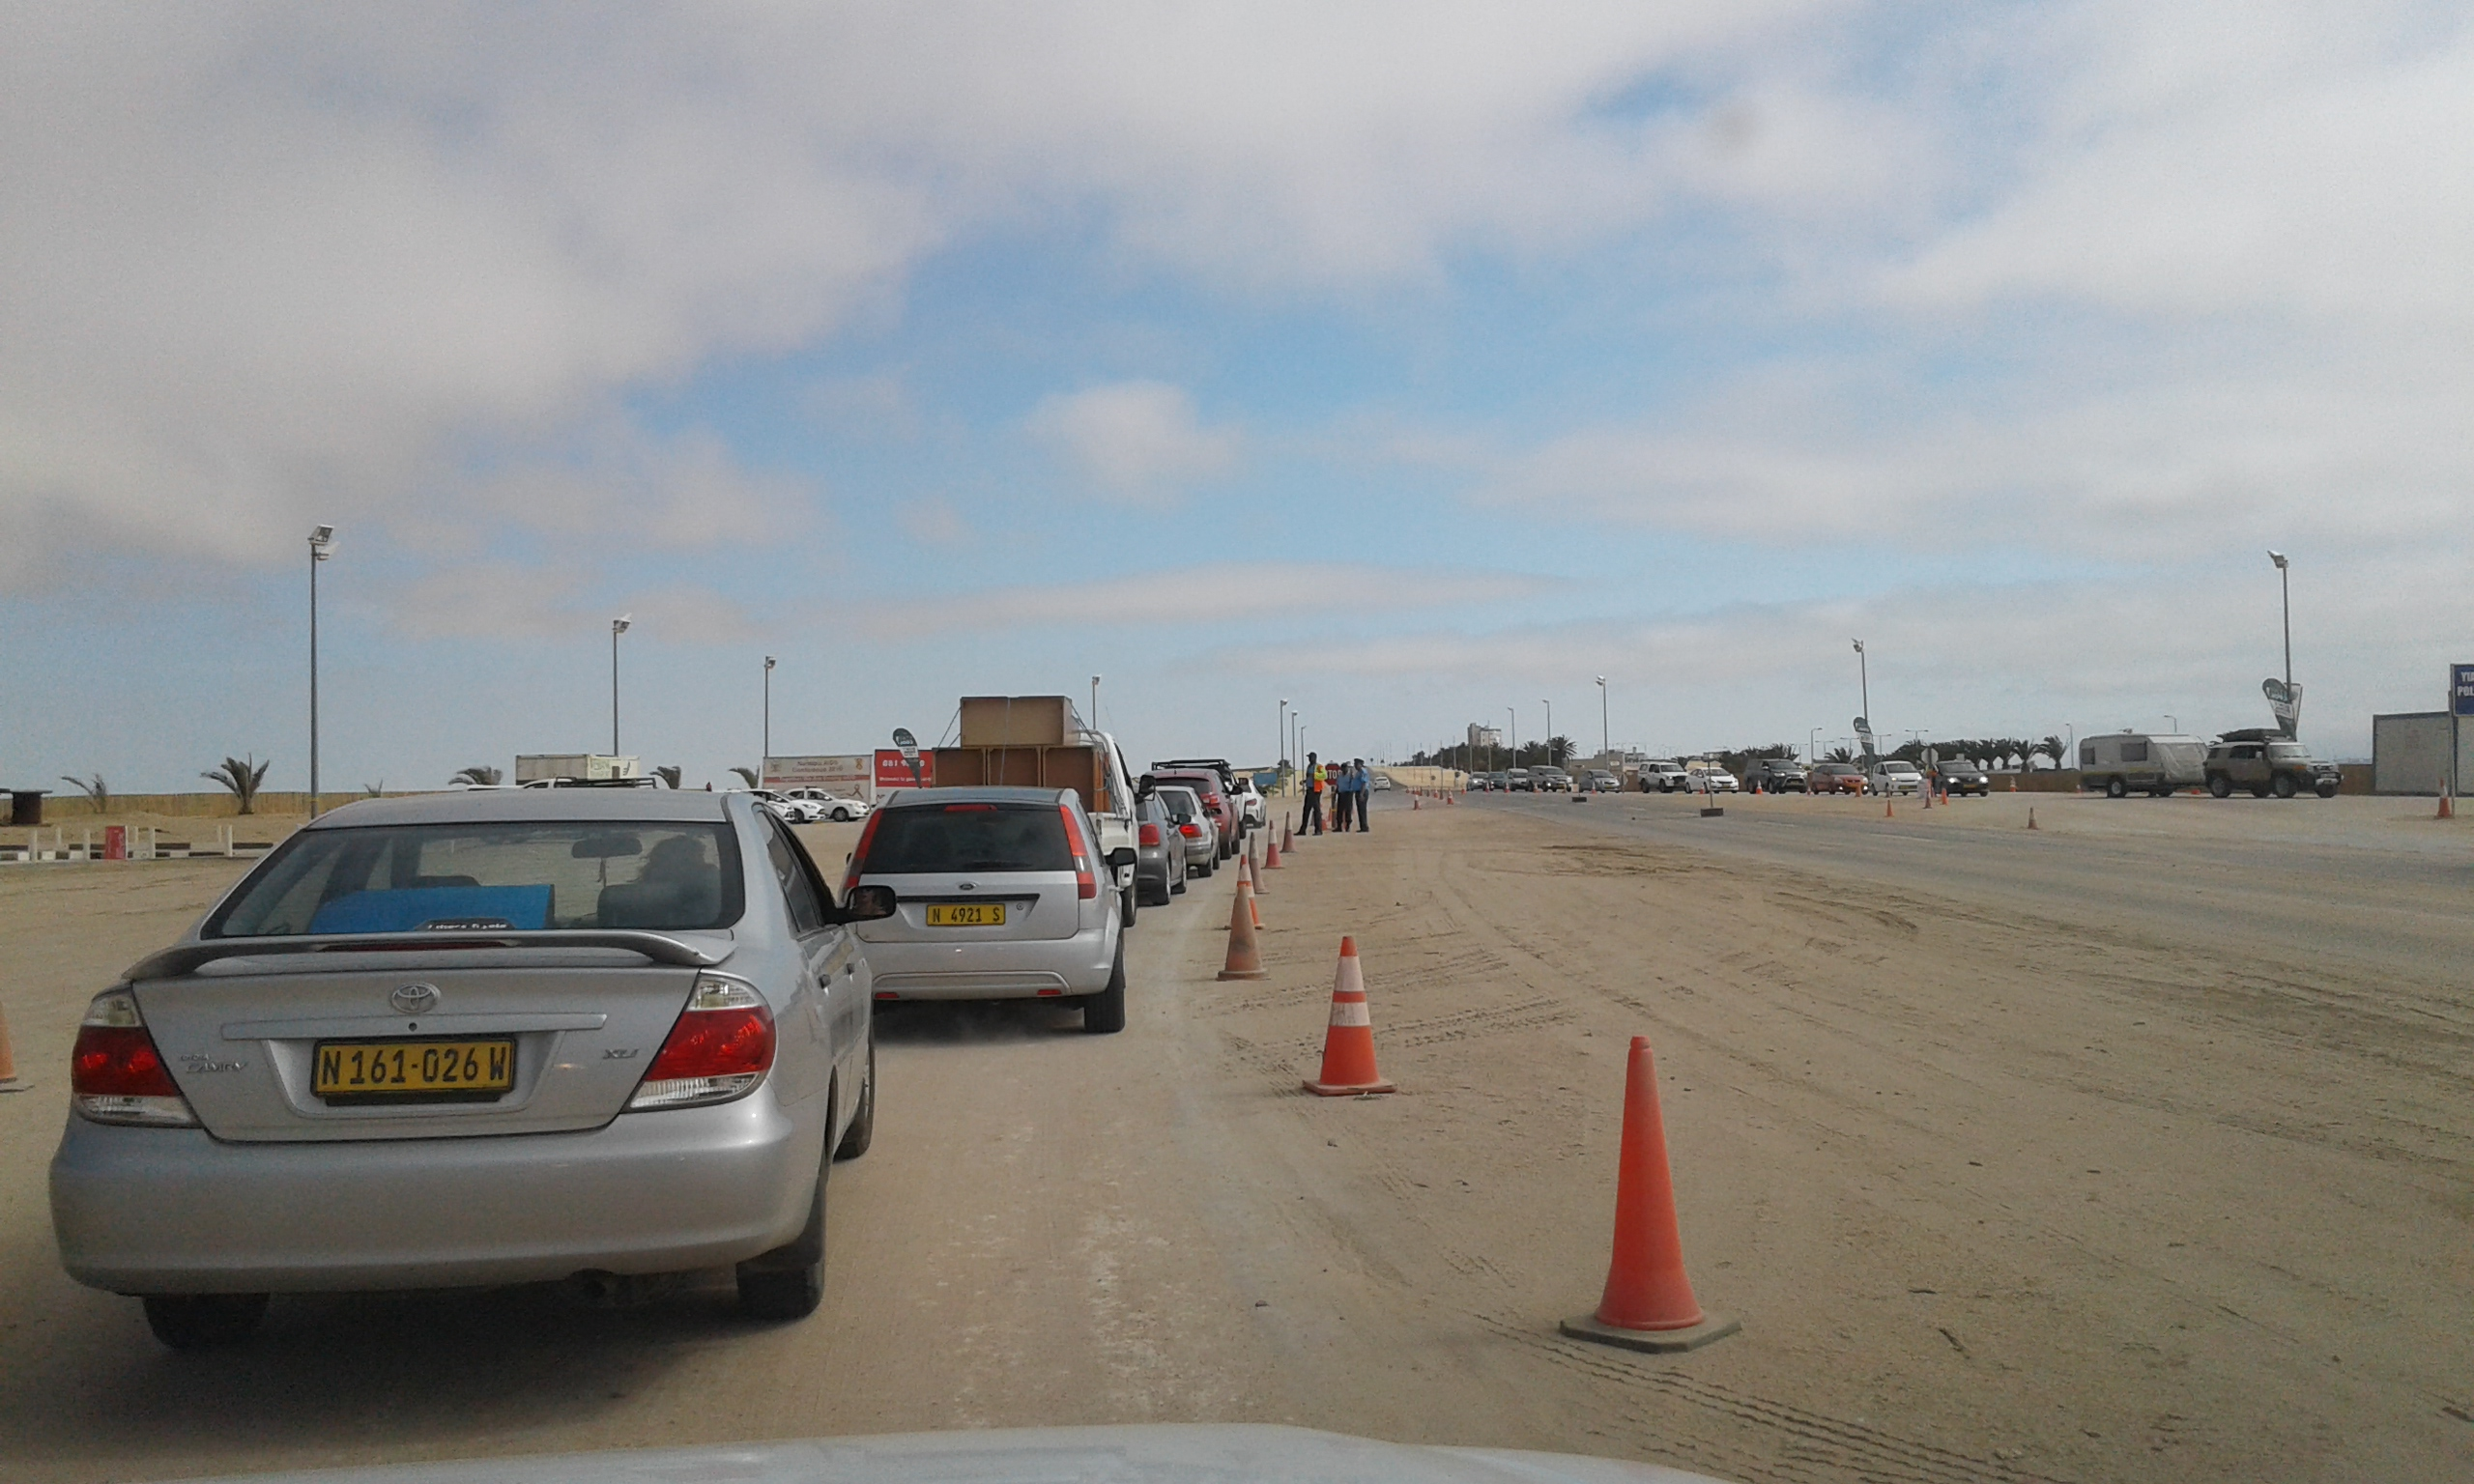 Traffic fines top N$7 million - Accidents - Namibian Sun